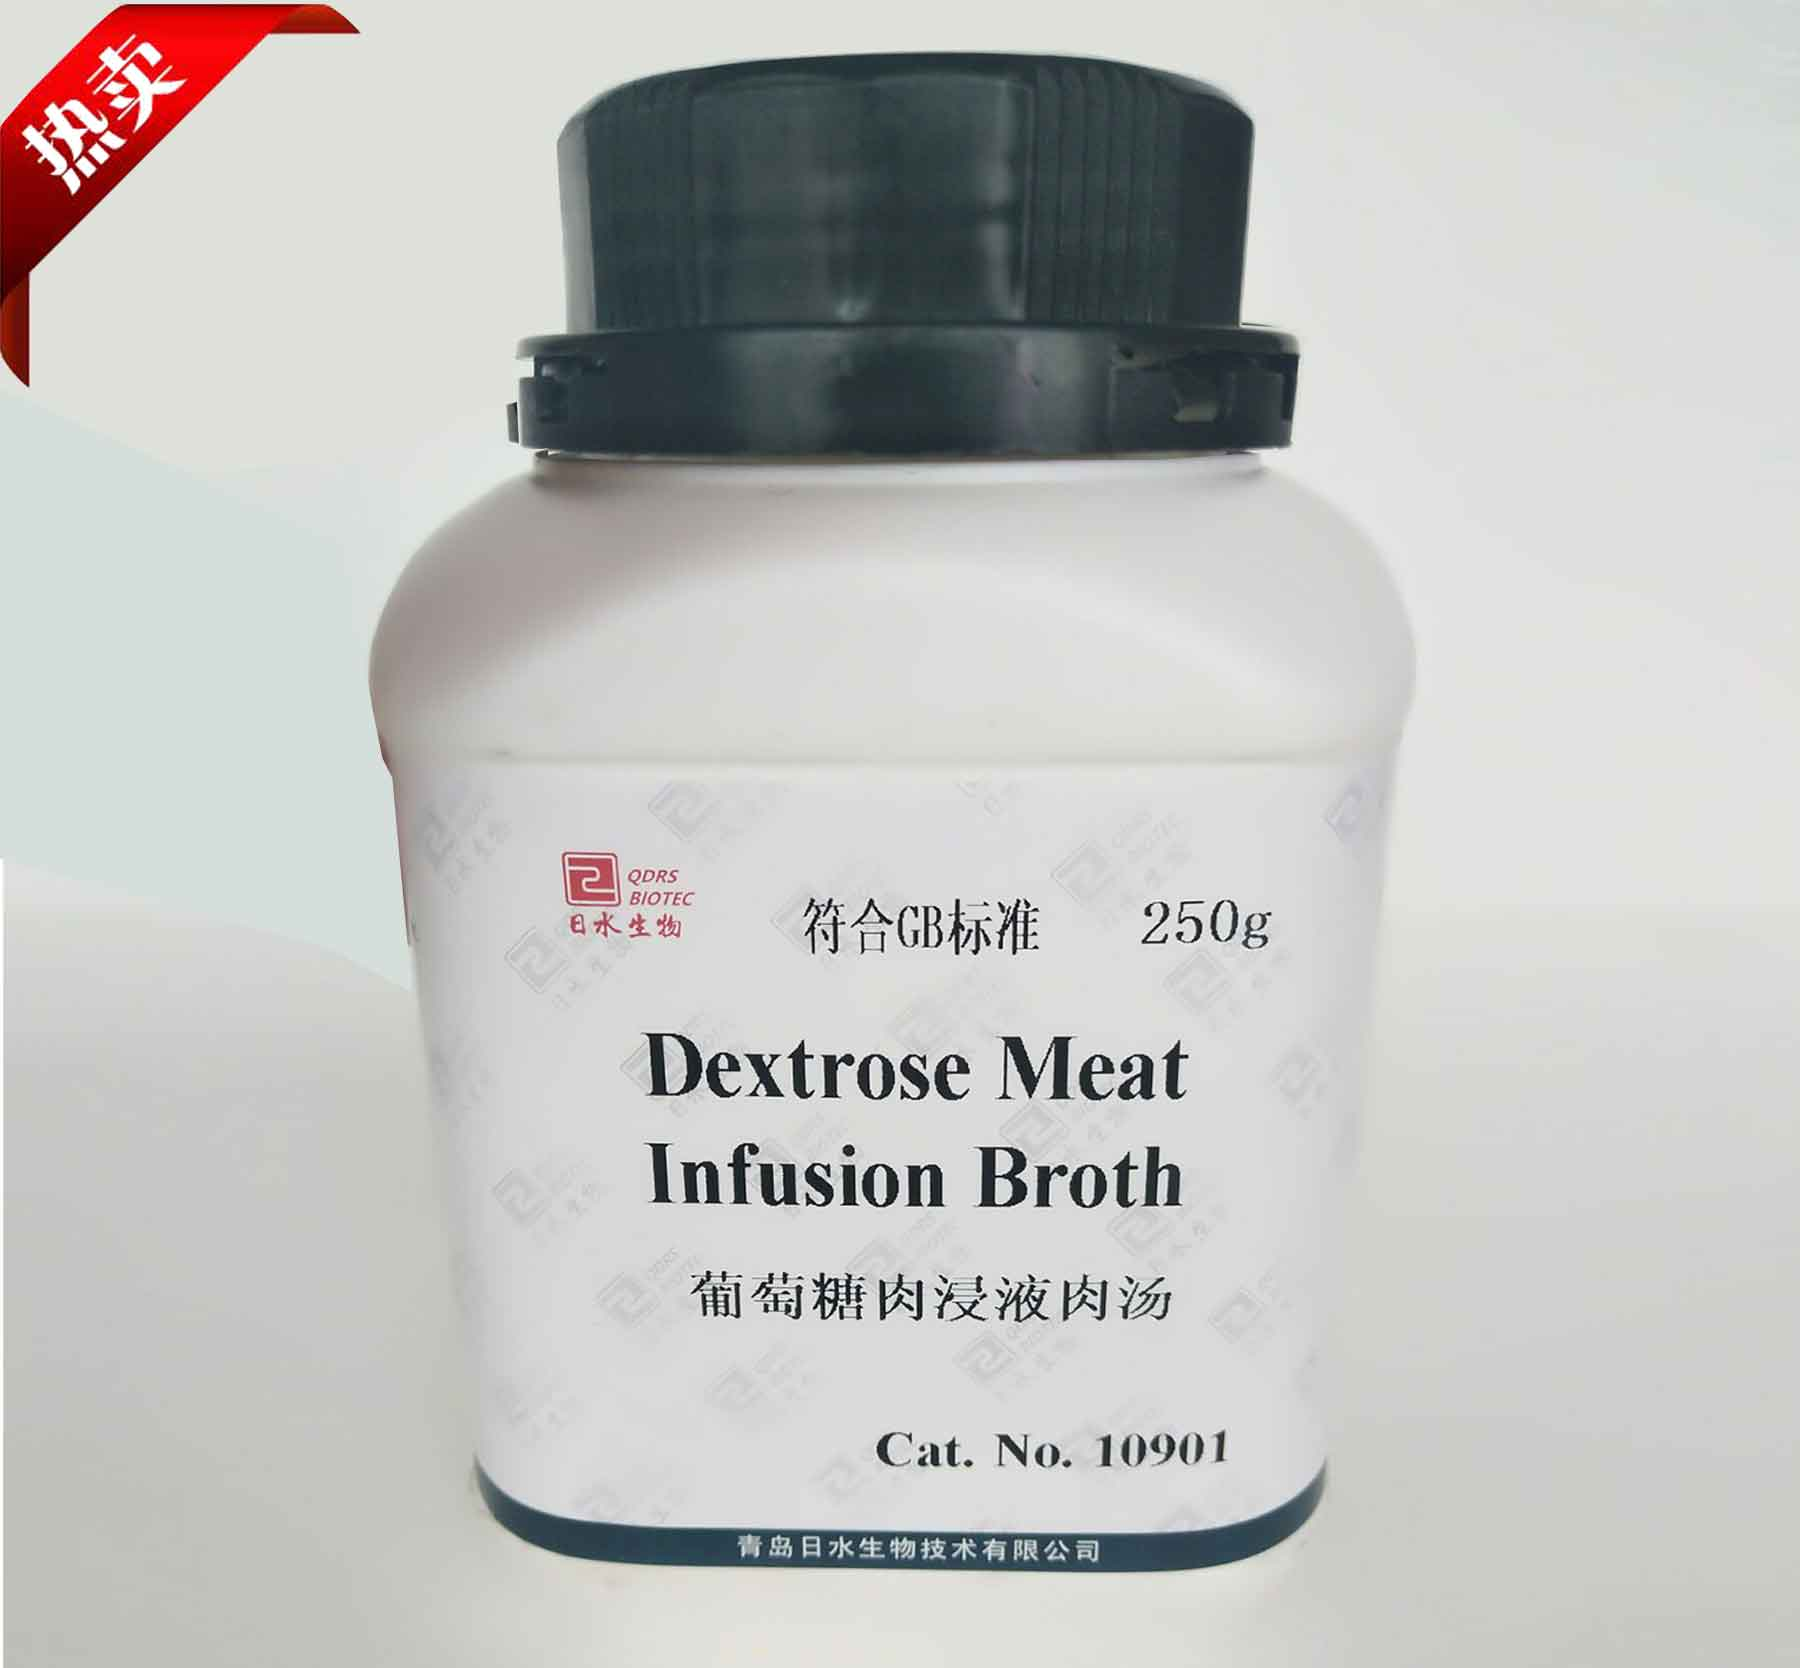 葡萄糖肉浸液肉汤(Dextrose Meat Infusion Broth)